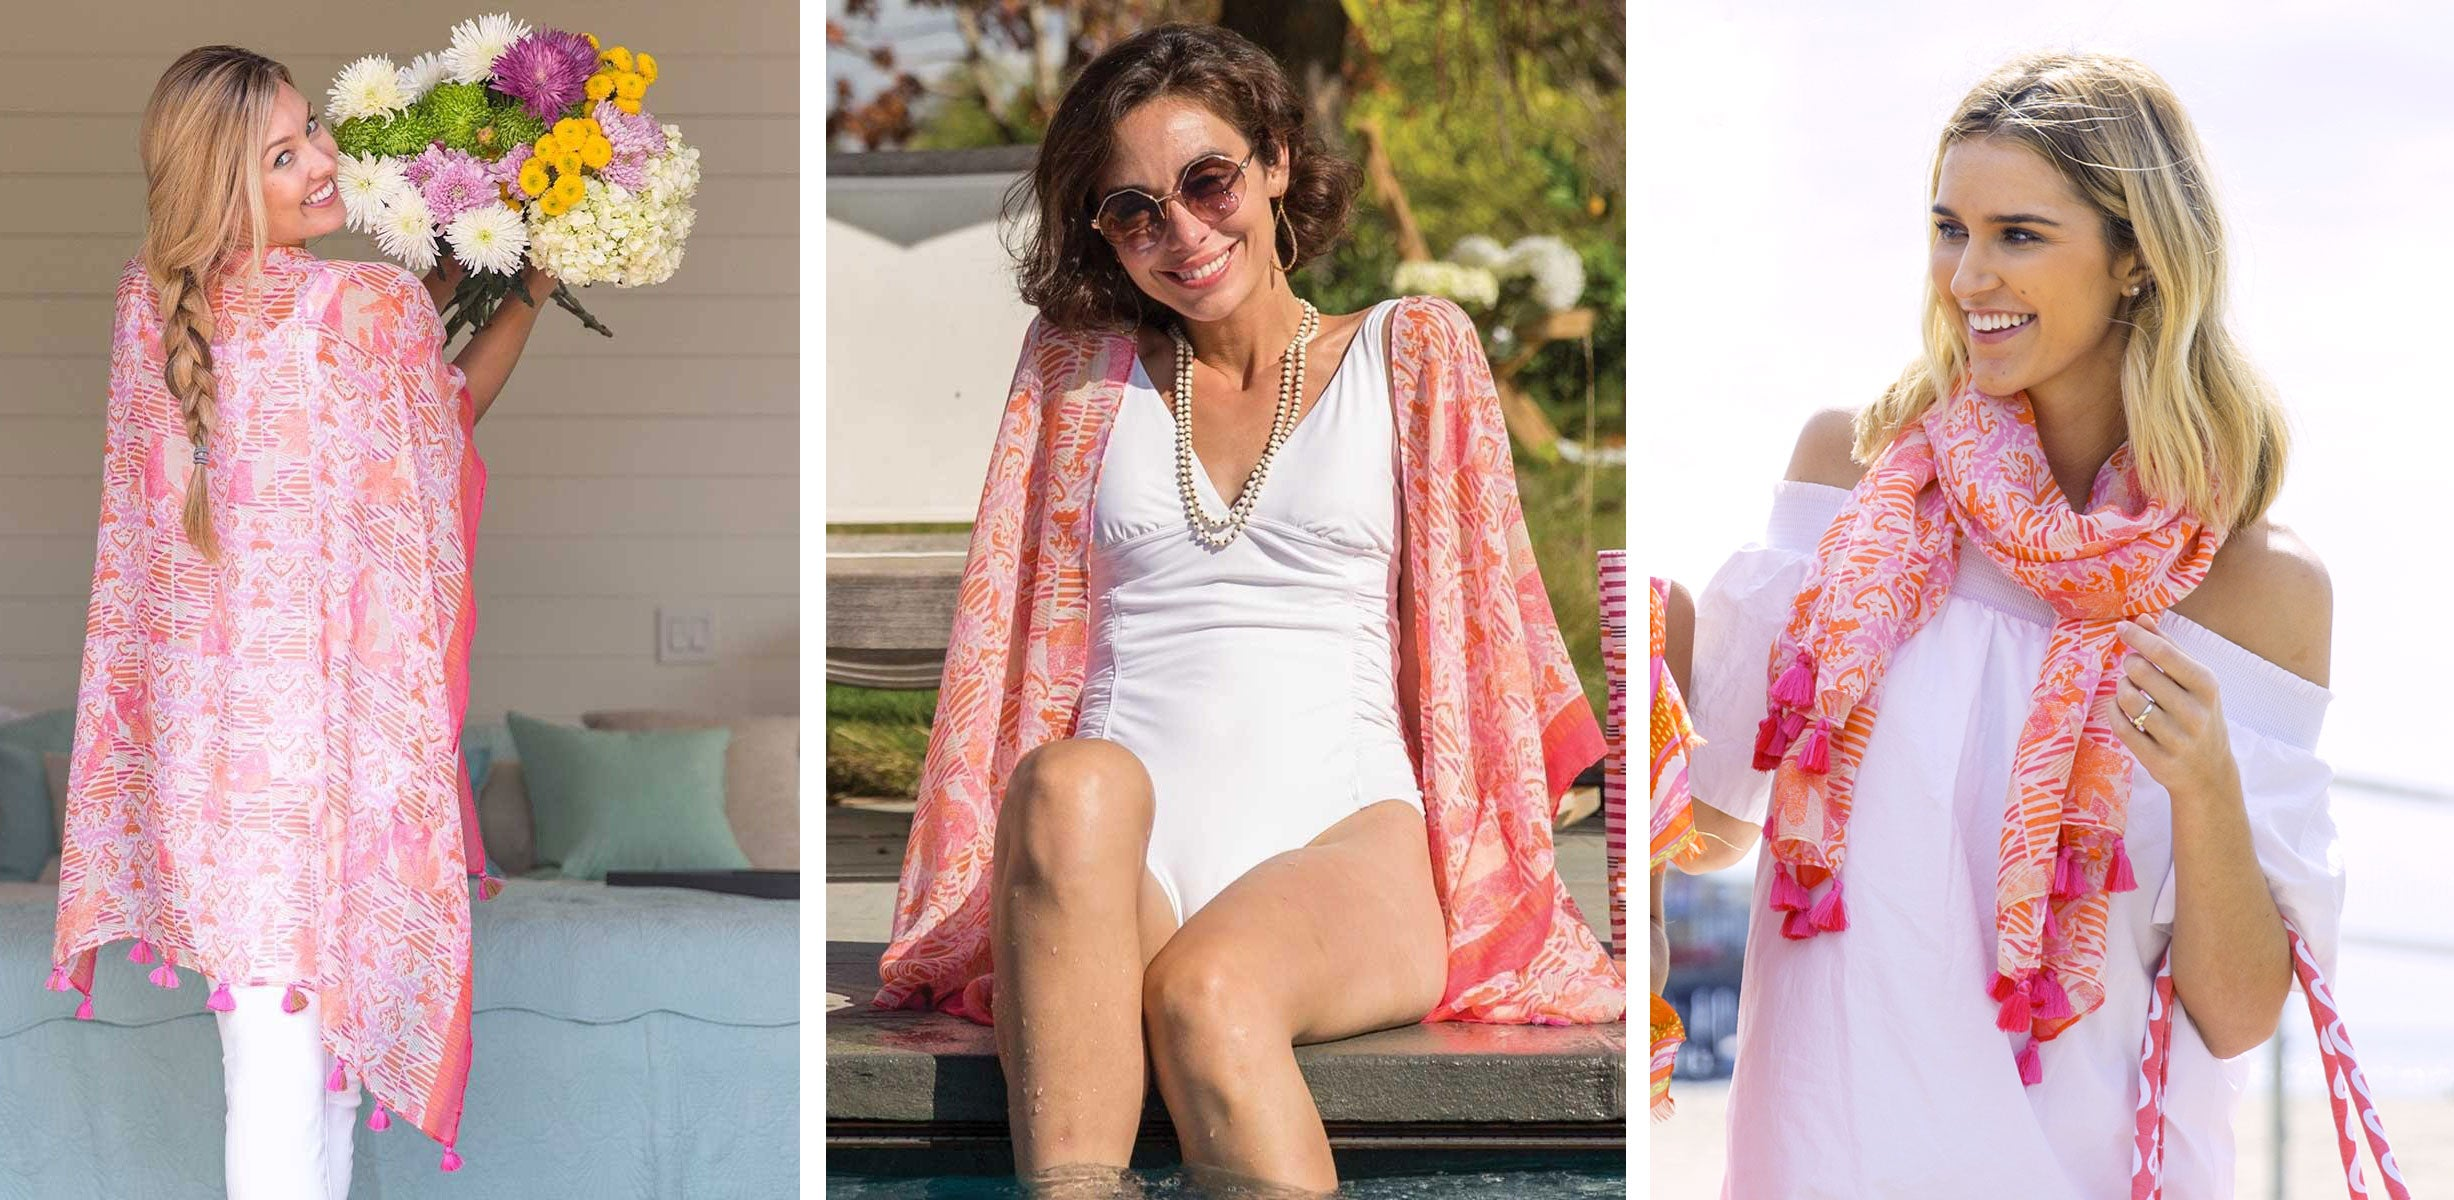 A pink and orange summer kimono worn three ways: as a kimono, swimsuit cover-up, and a scarf.